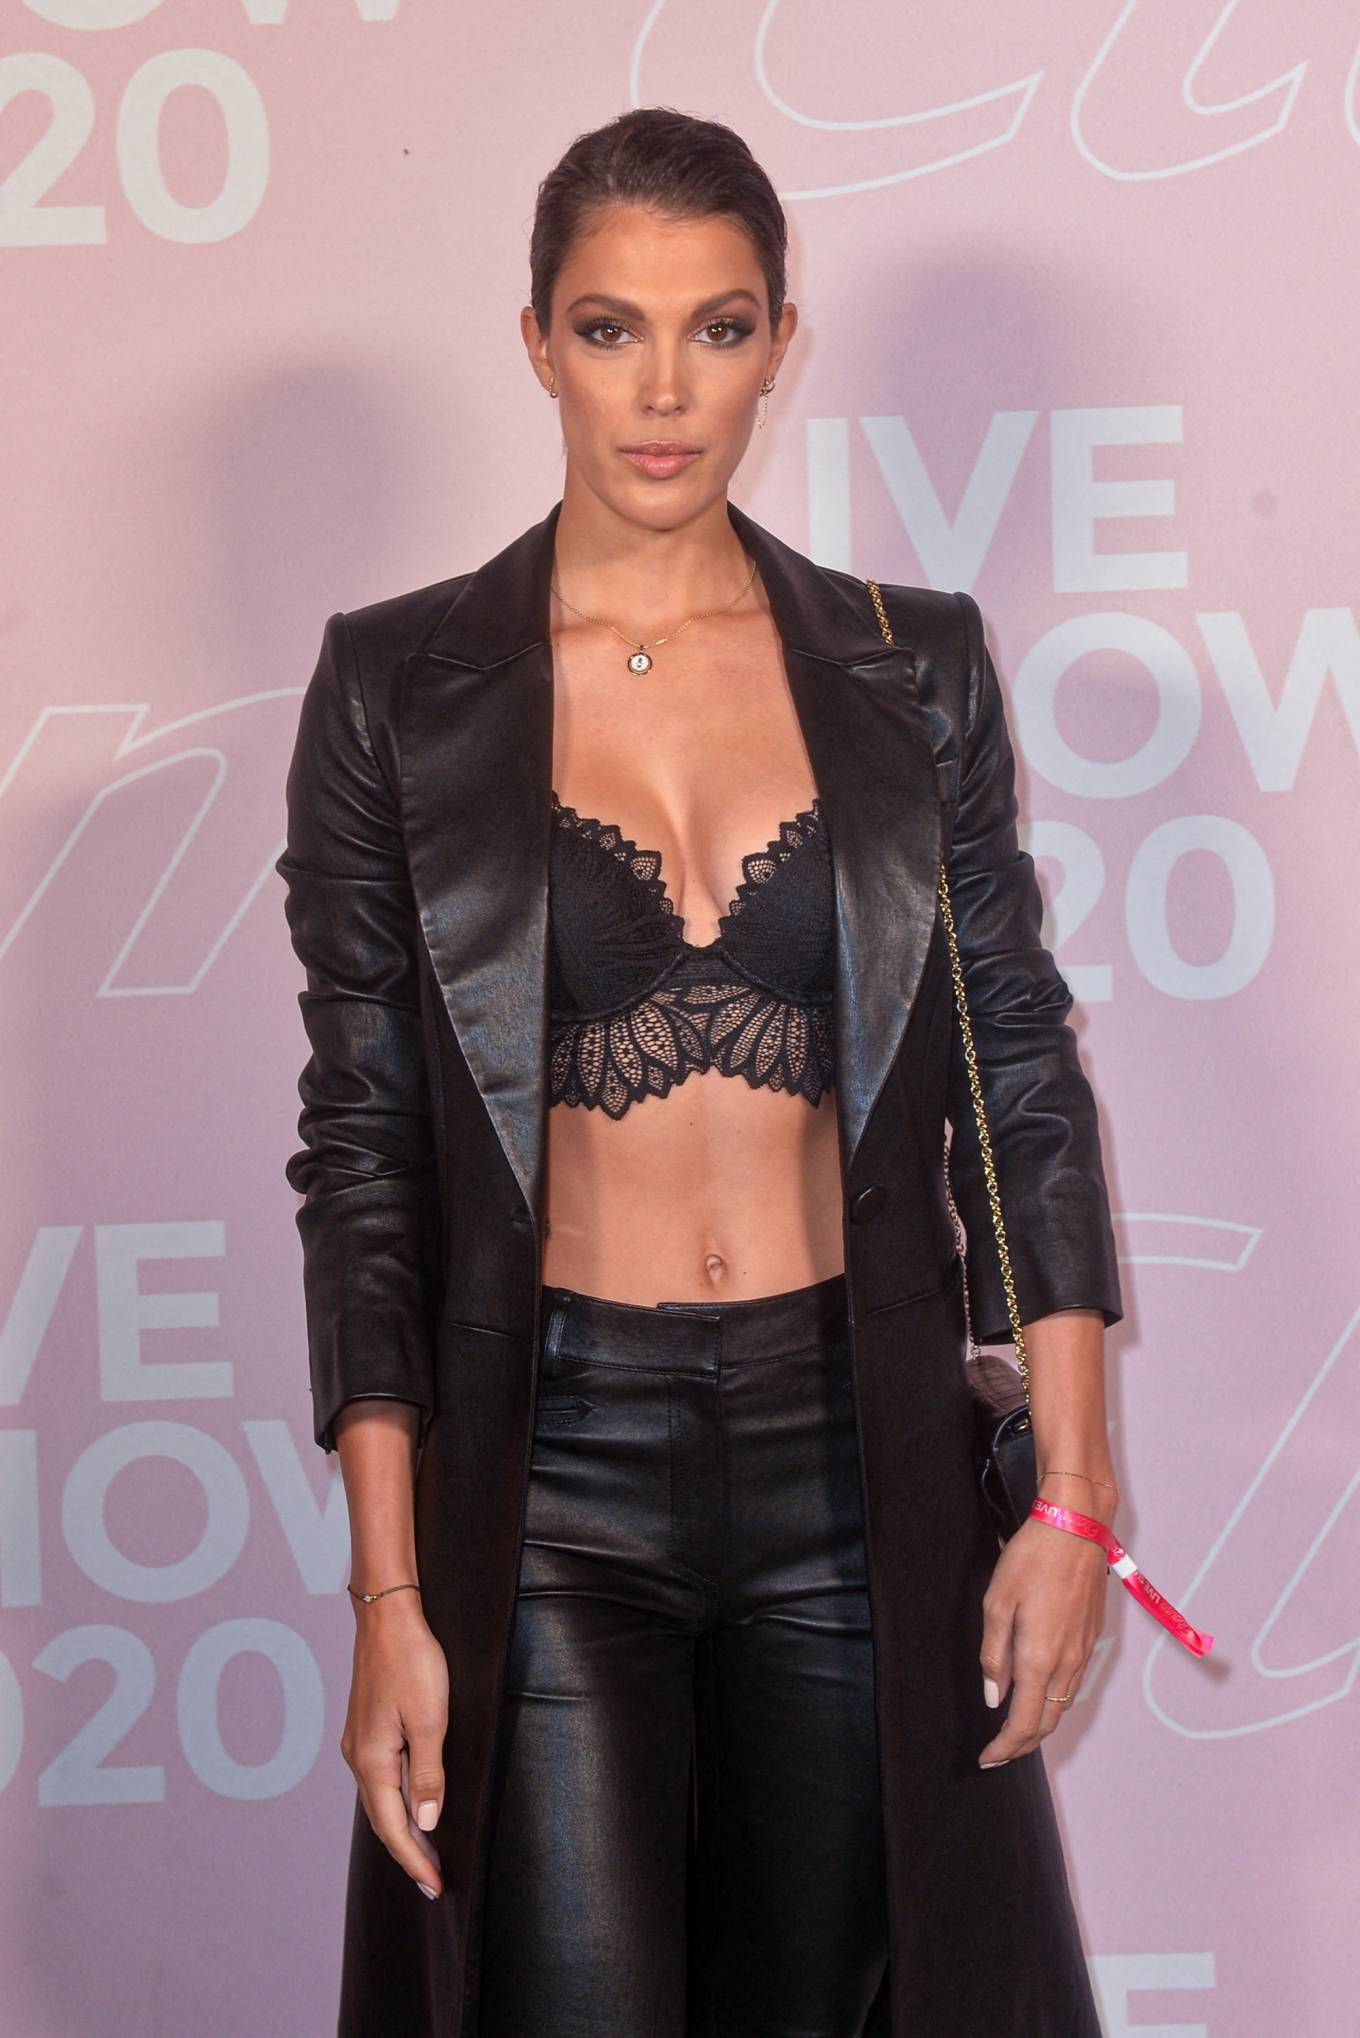 Iris Mittenaere 2020 : Iris Mittenaere – Etam show at Paris Fashion Week 2020-05